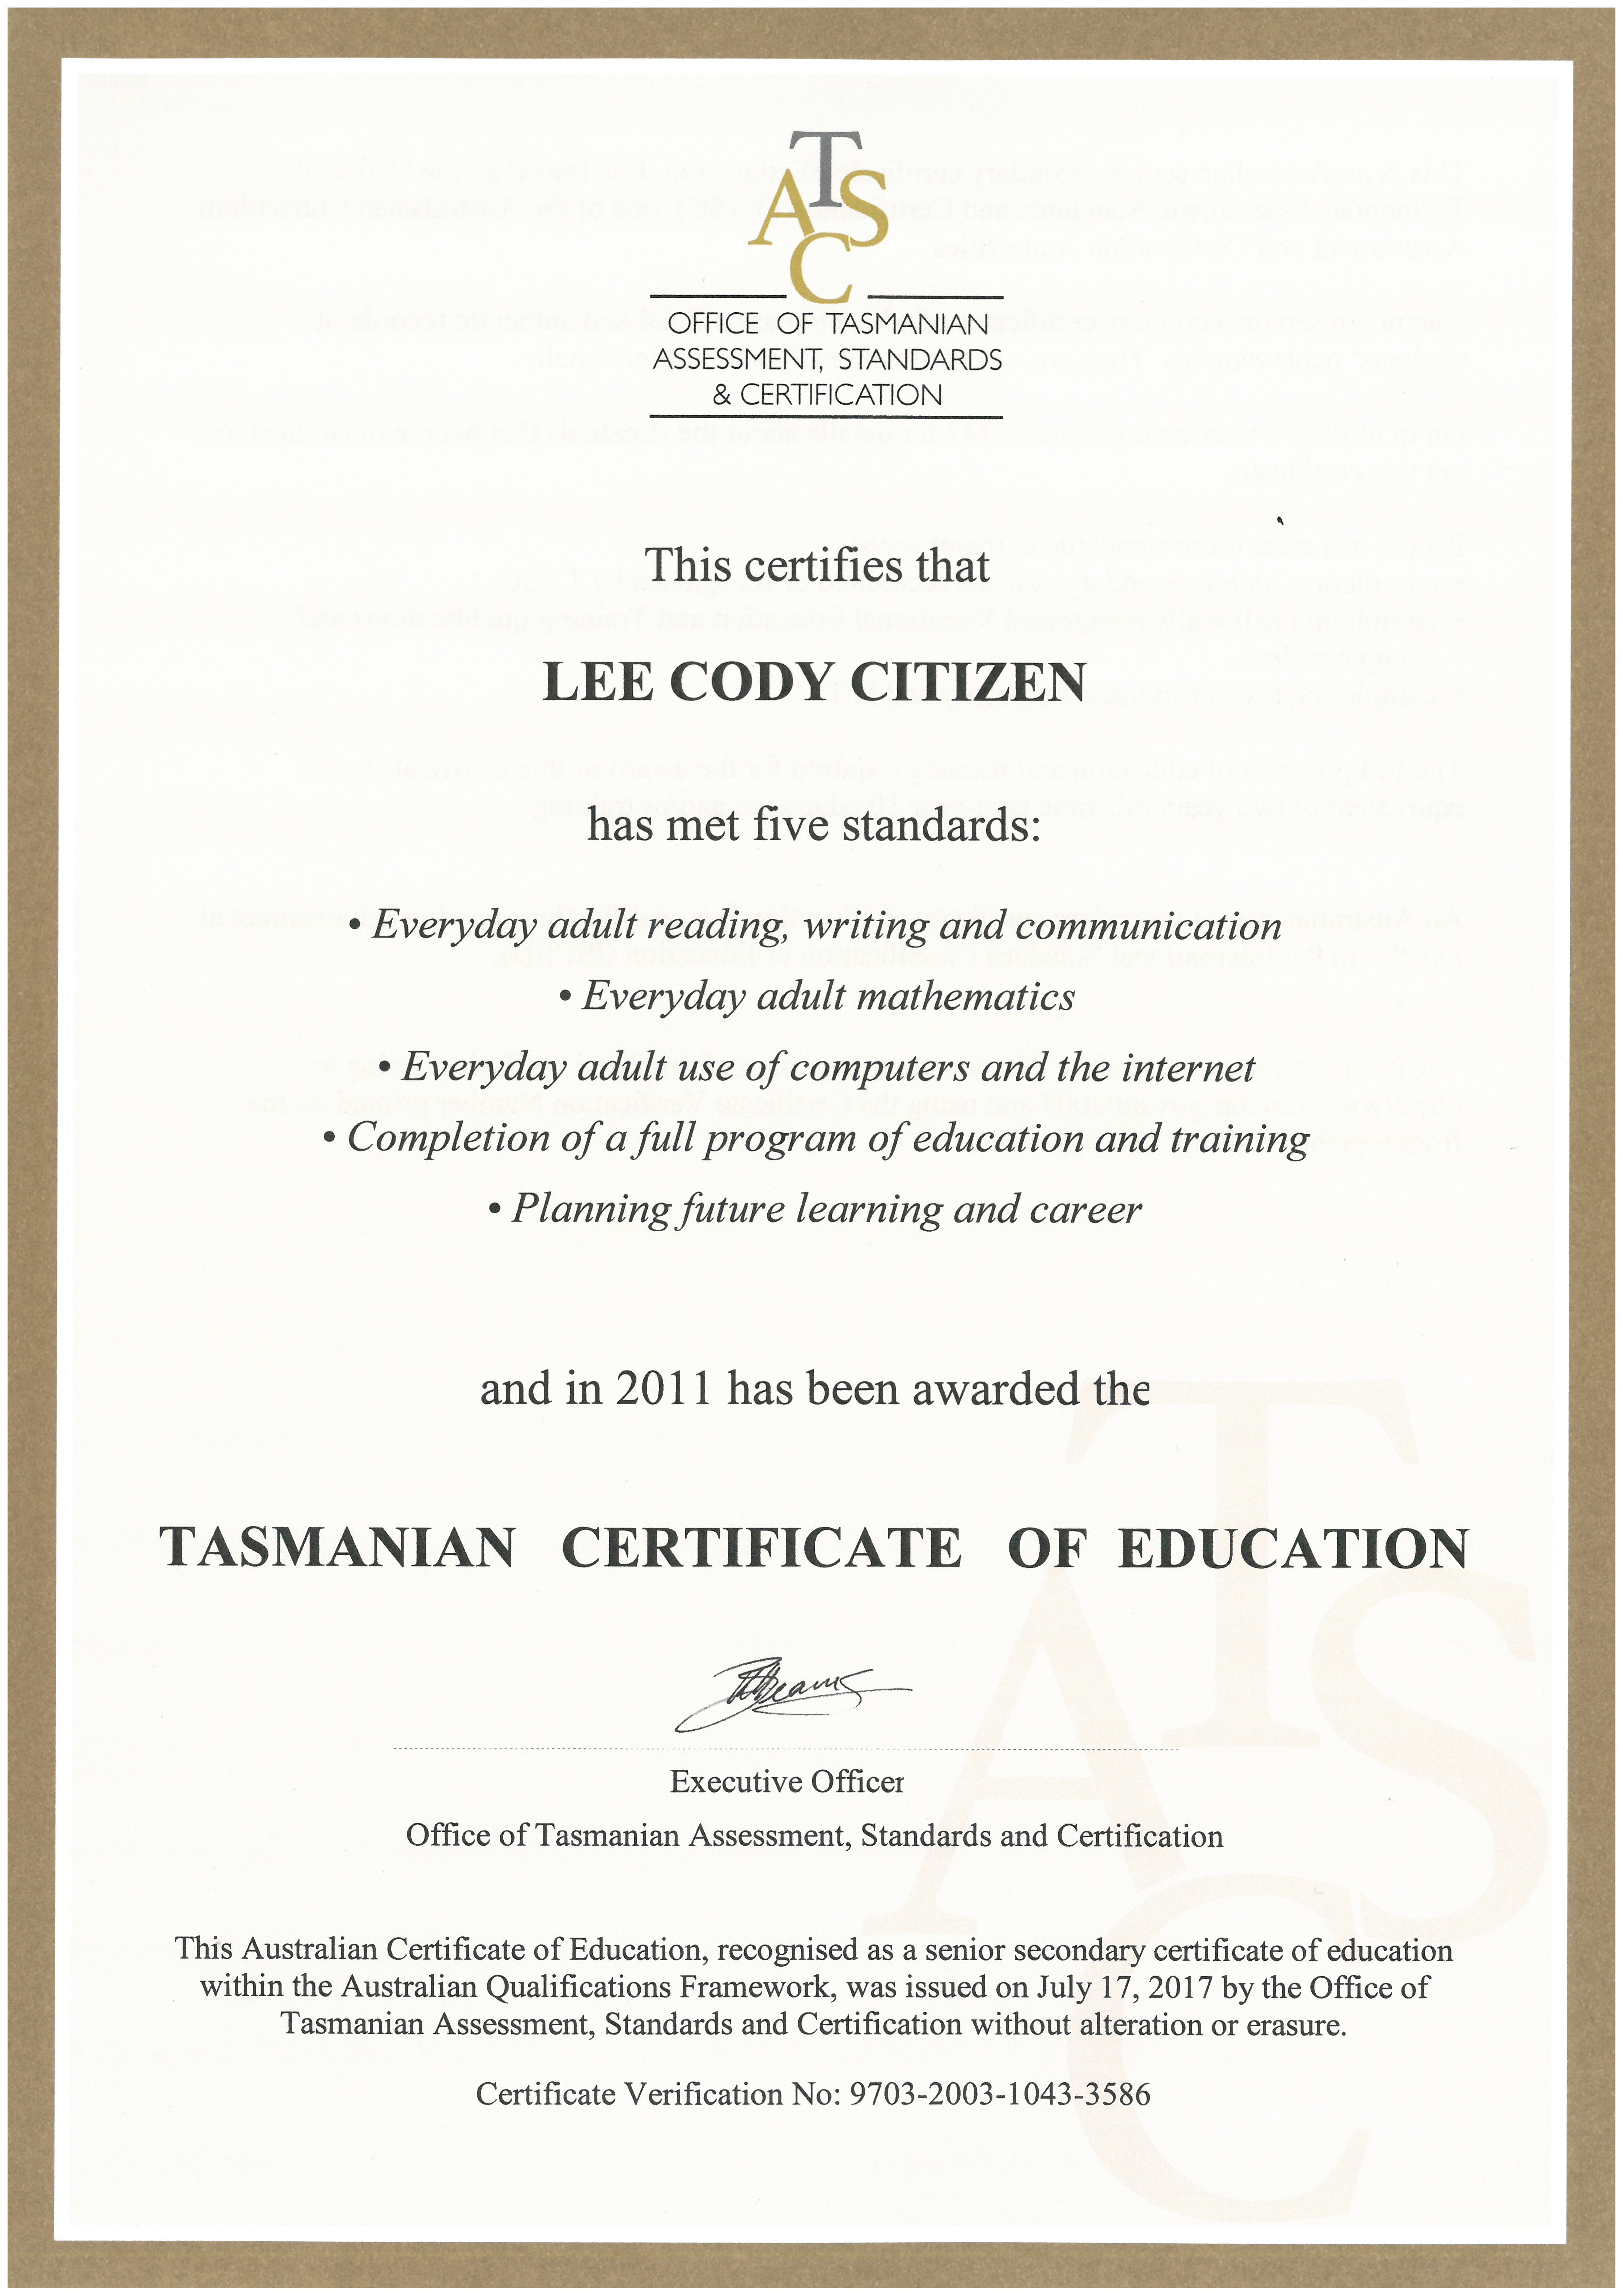 Tasmanian Certificate of Education (TCE) - TASC